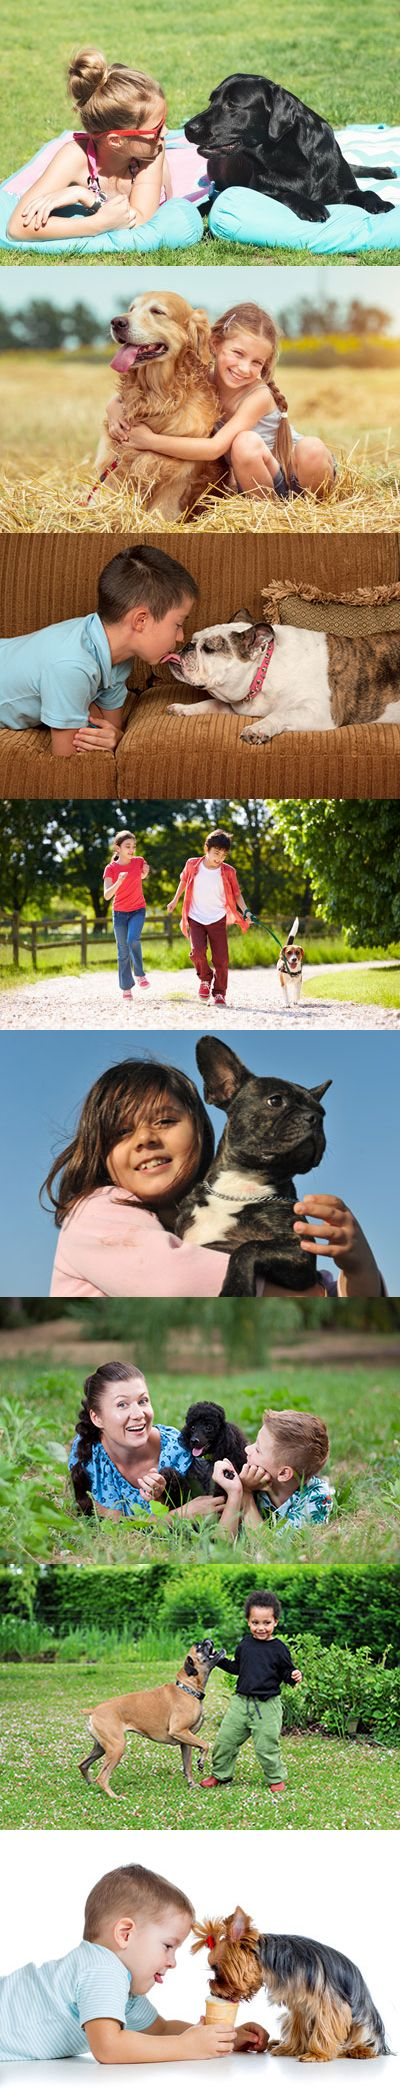 Family-Friendly Dog Breeds | Some of the best canines for children